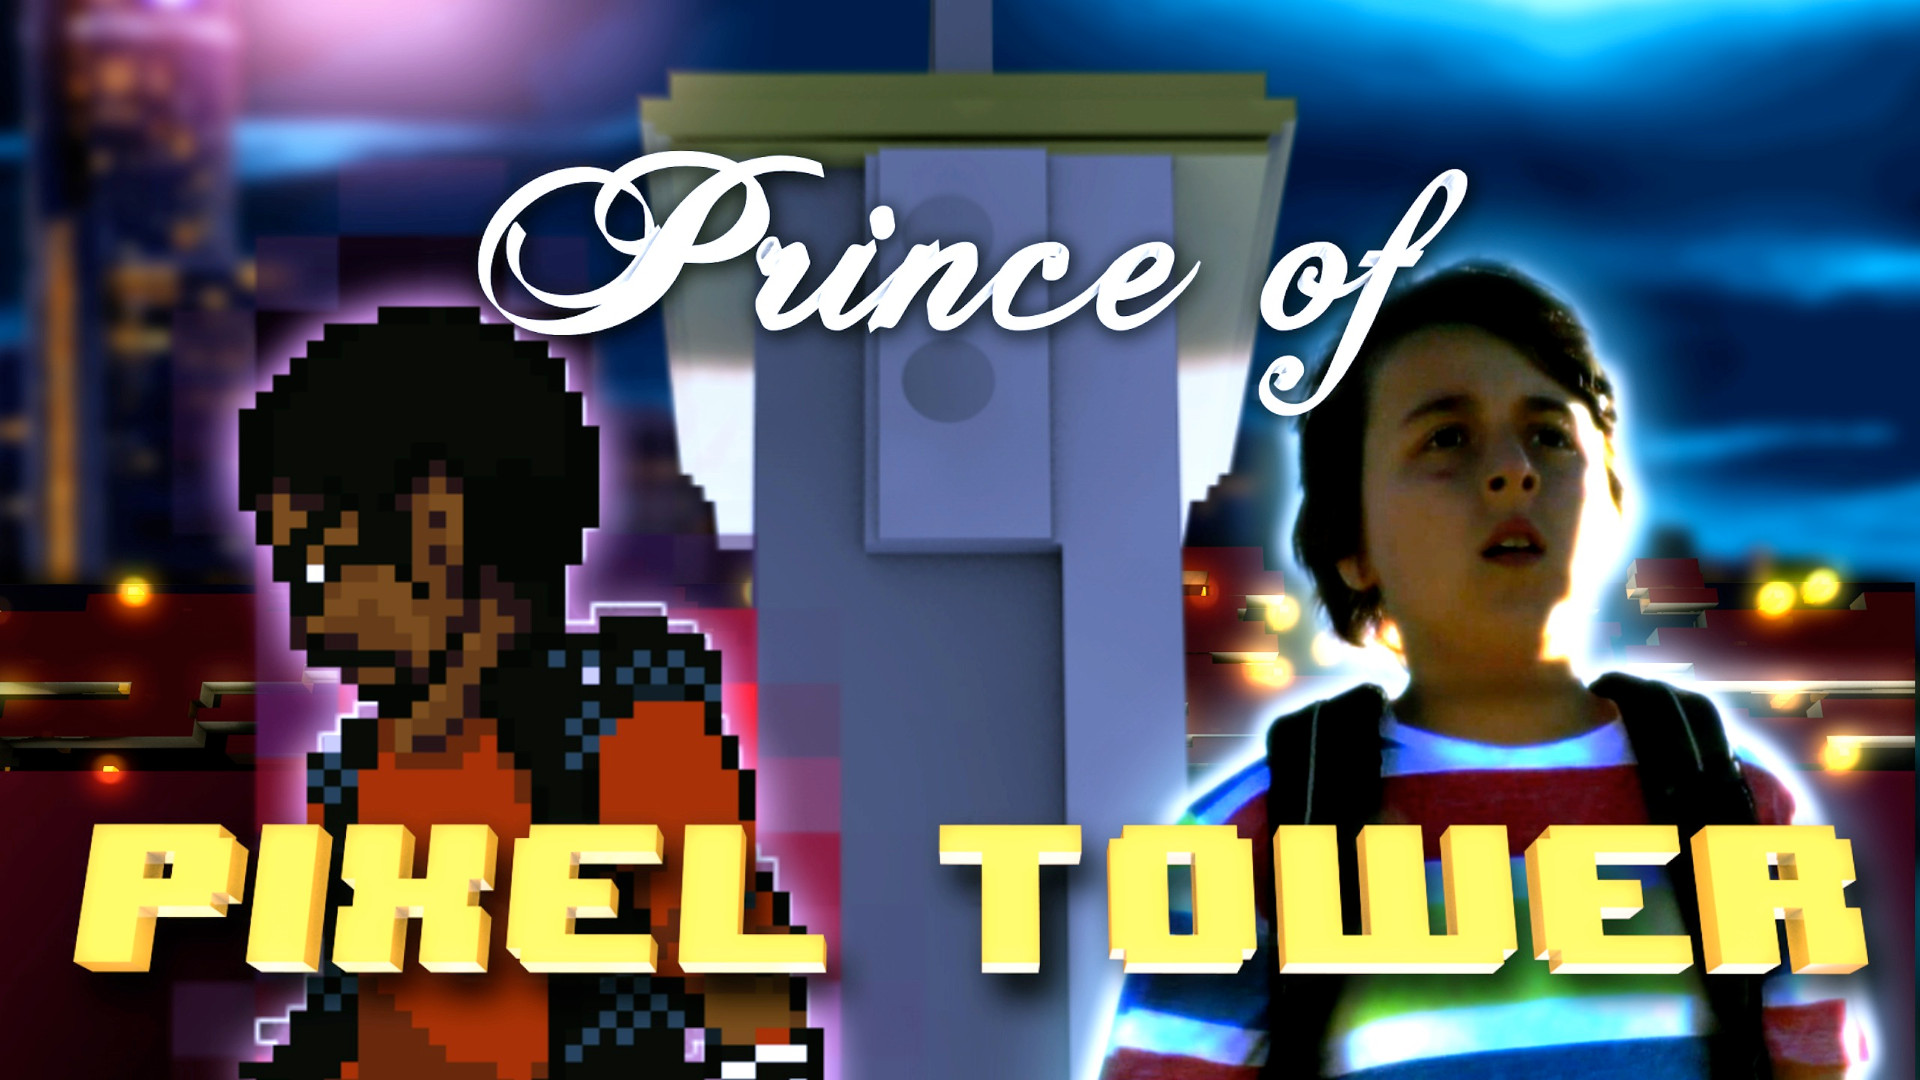 Frame from Prince of Pixel